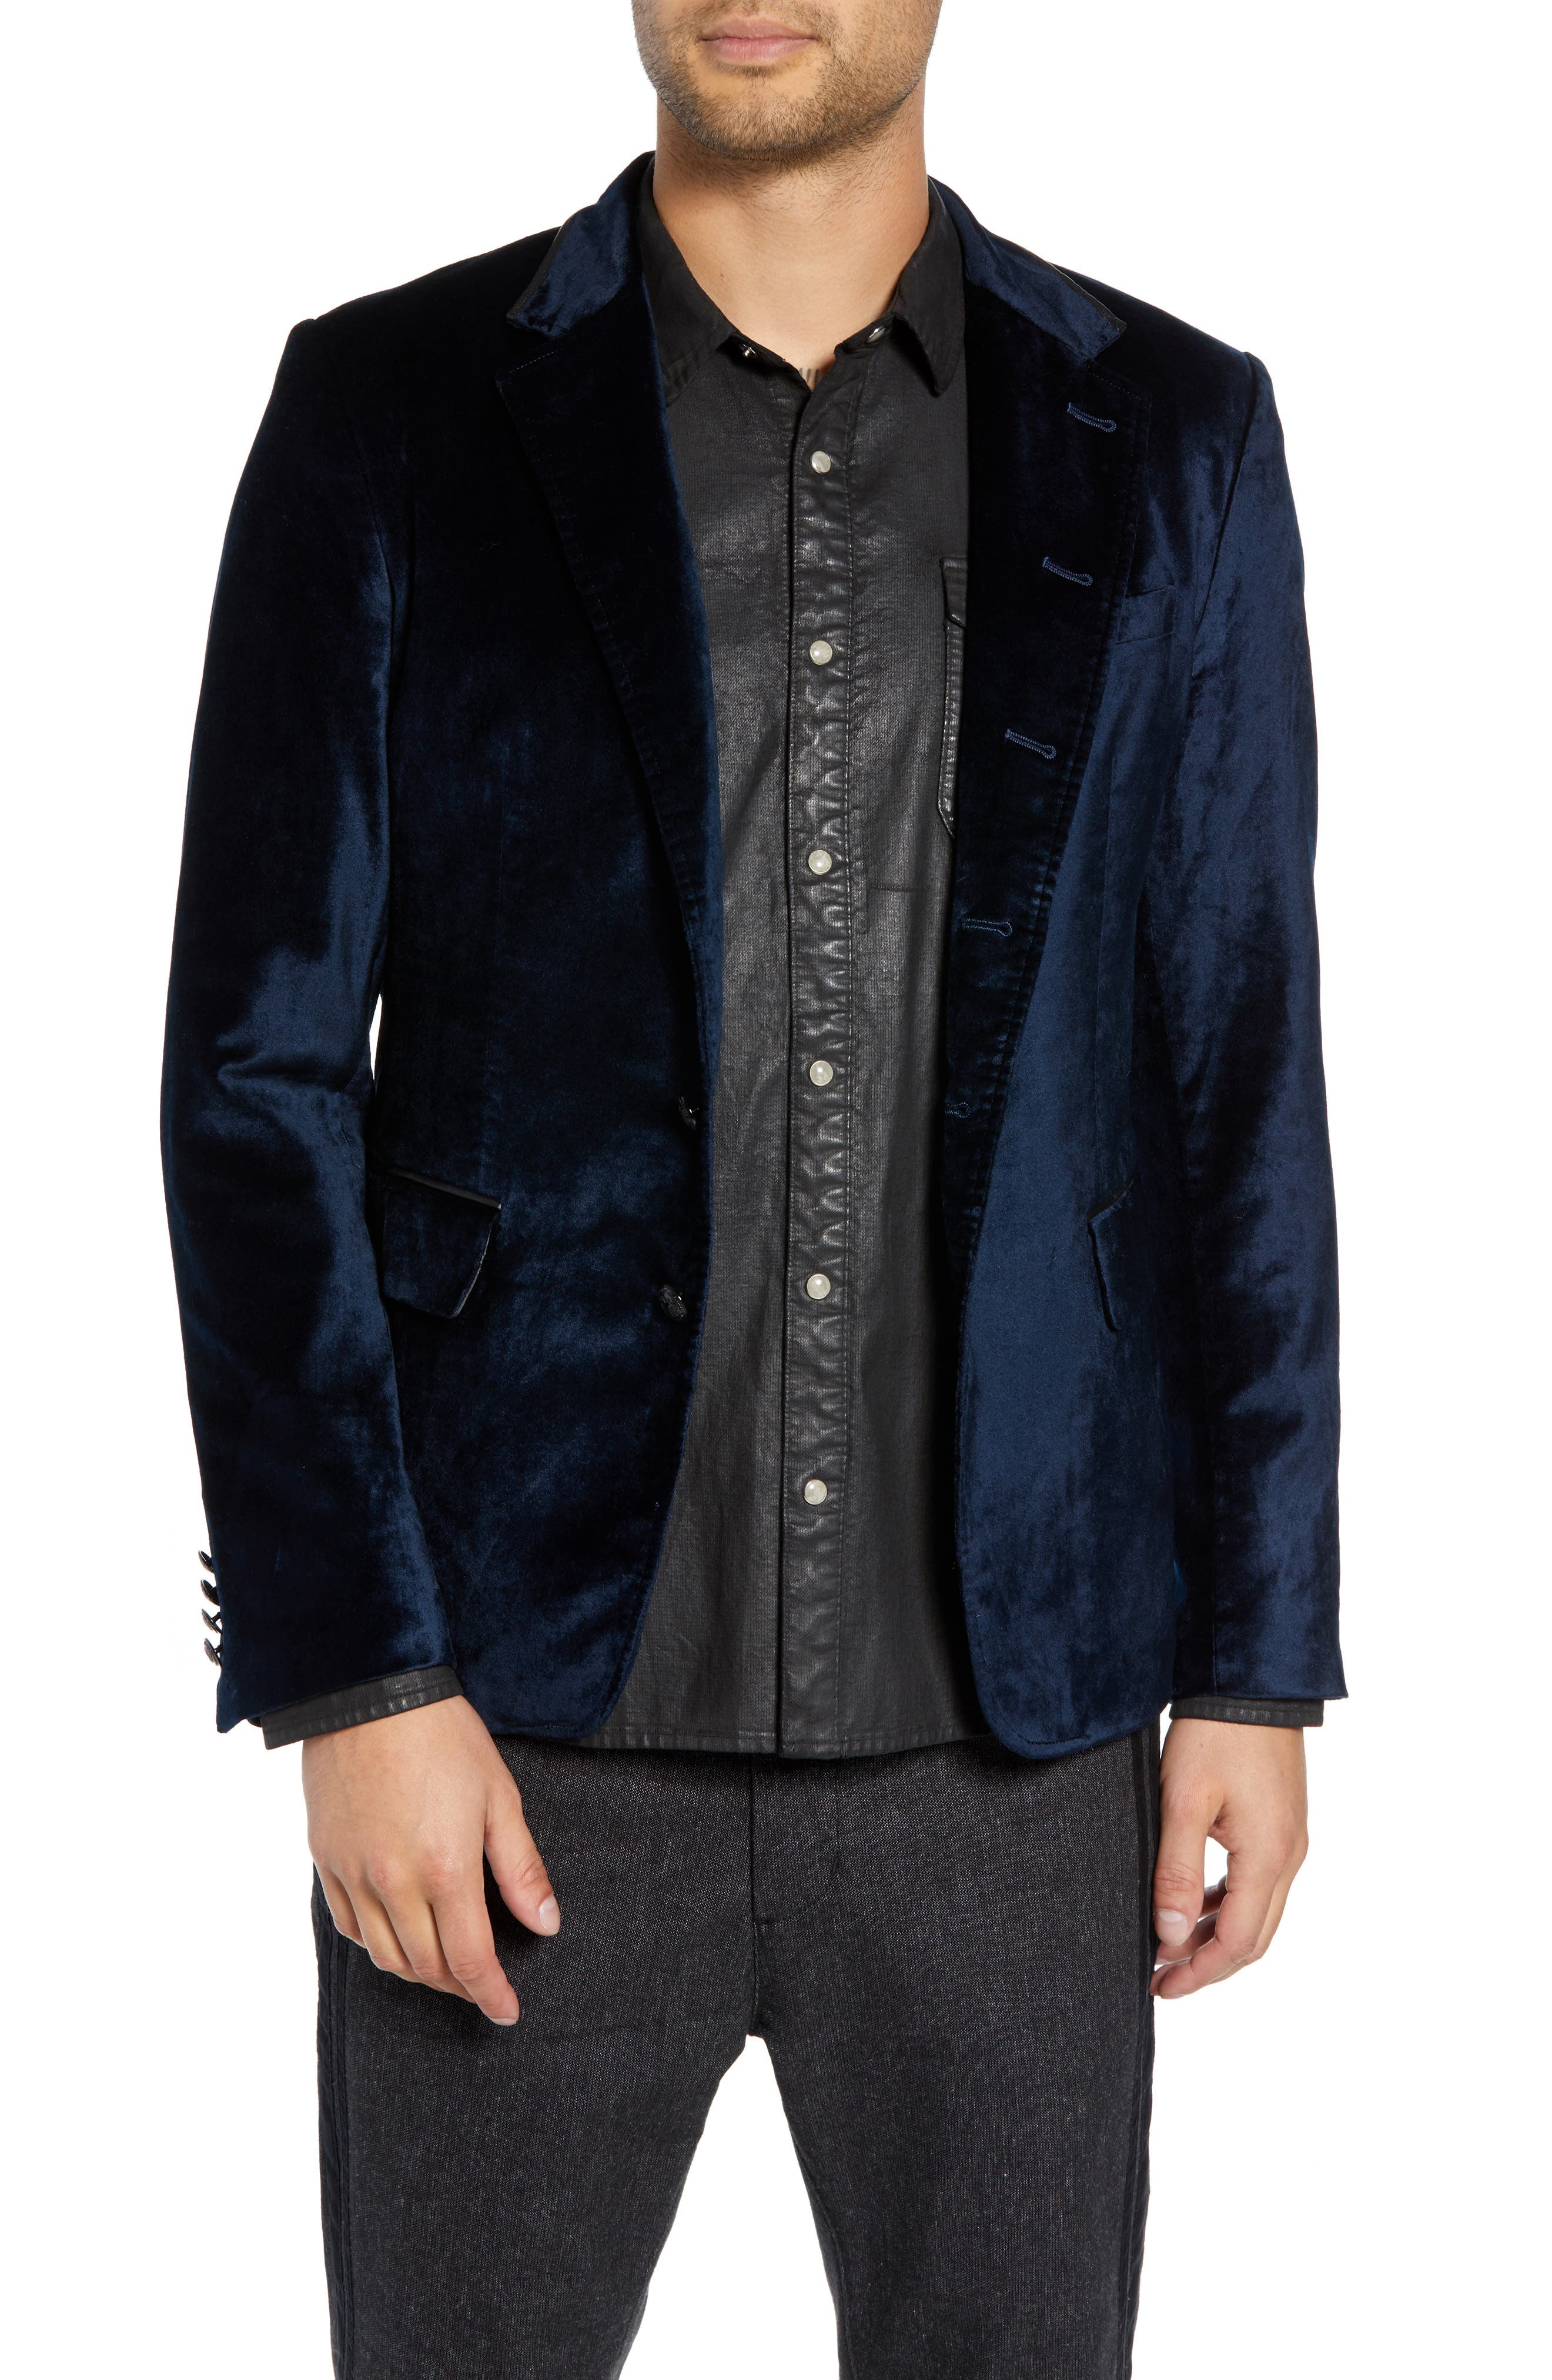 Velvet Jacket with Leather Trim,                             Main thumbnail 1, color,                             SAPPHIRE